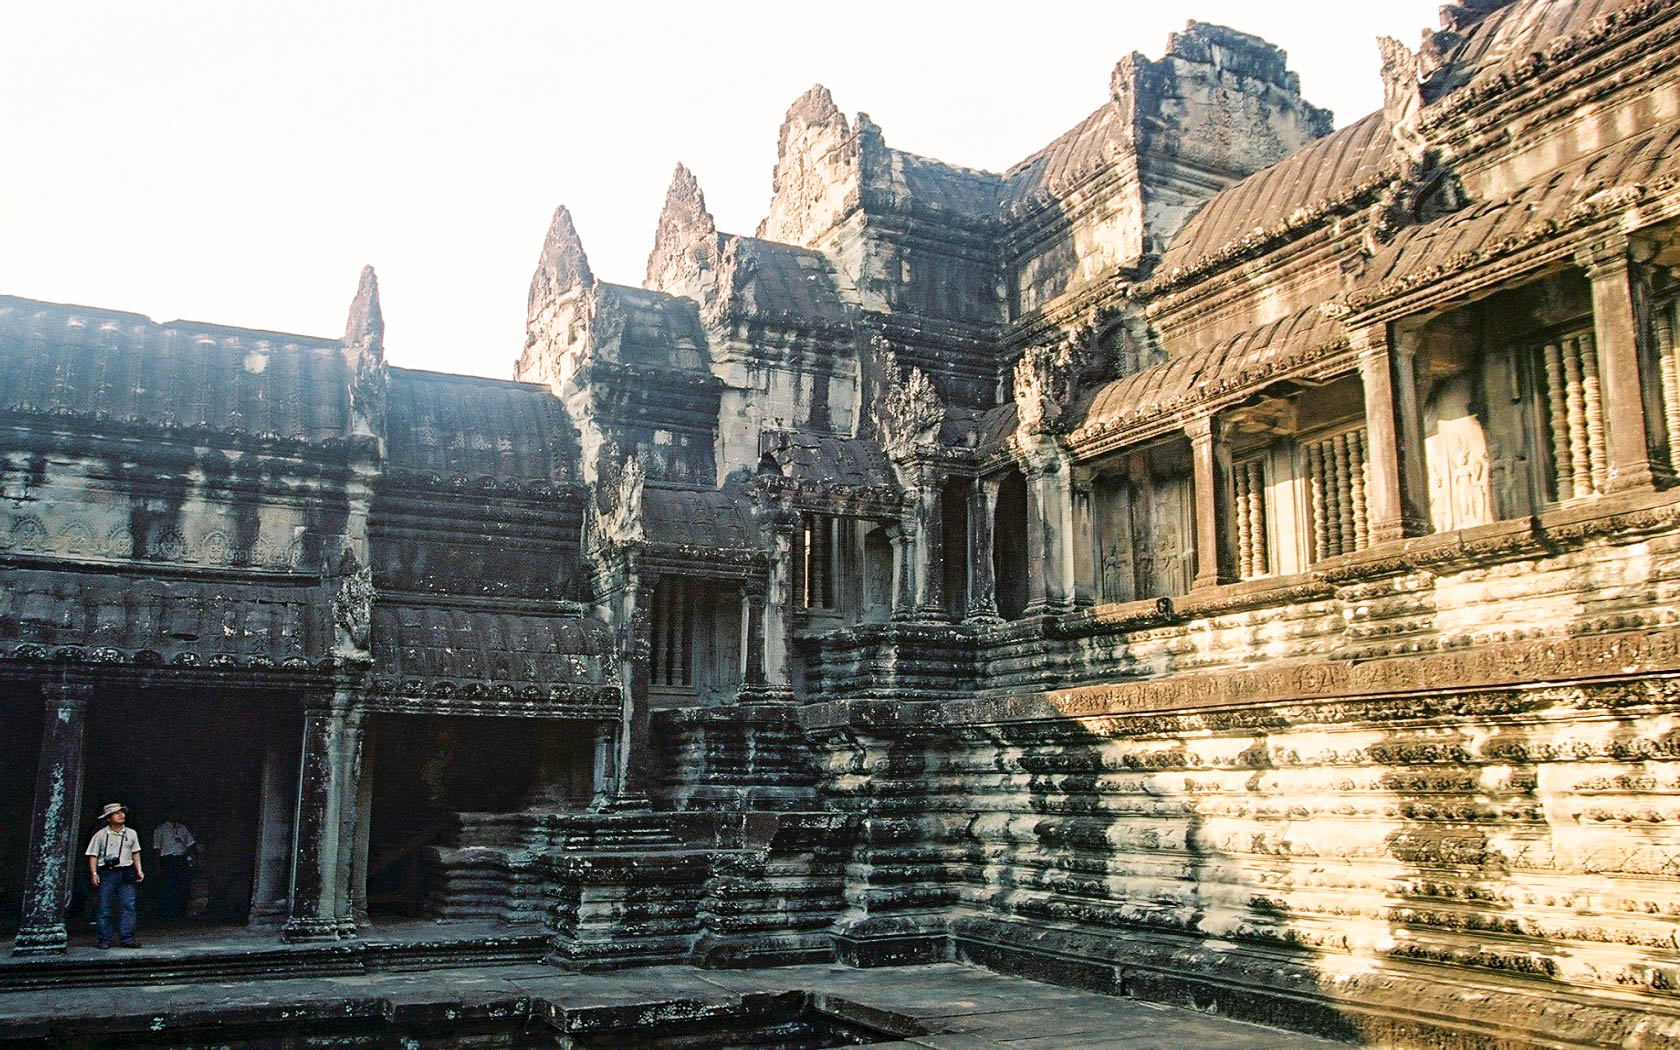 angkor wat amazing wallpapers hd images amp pictures in high